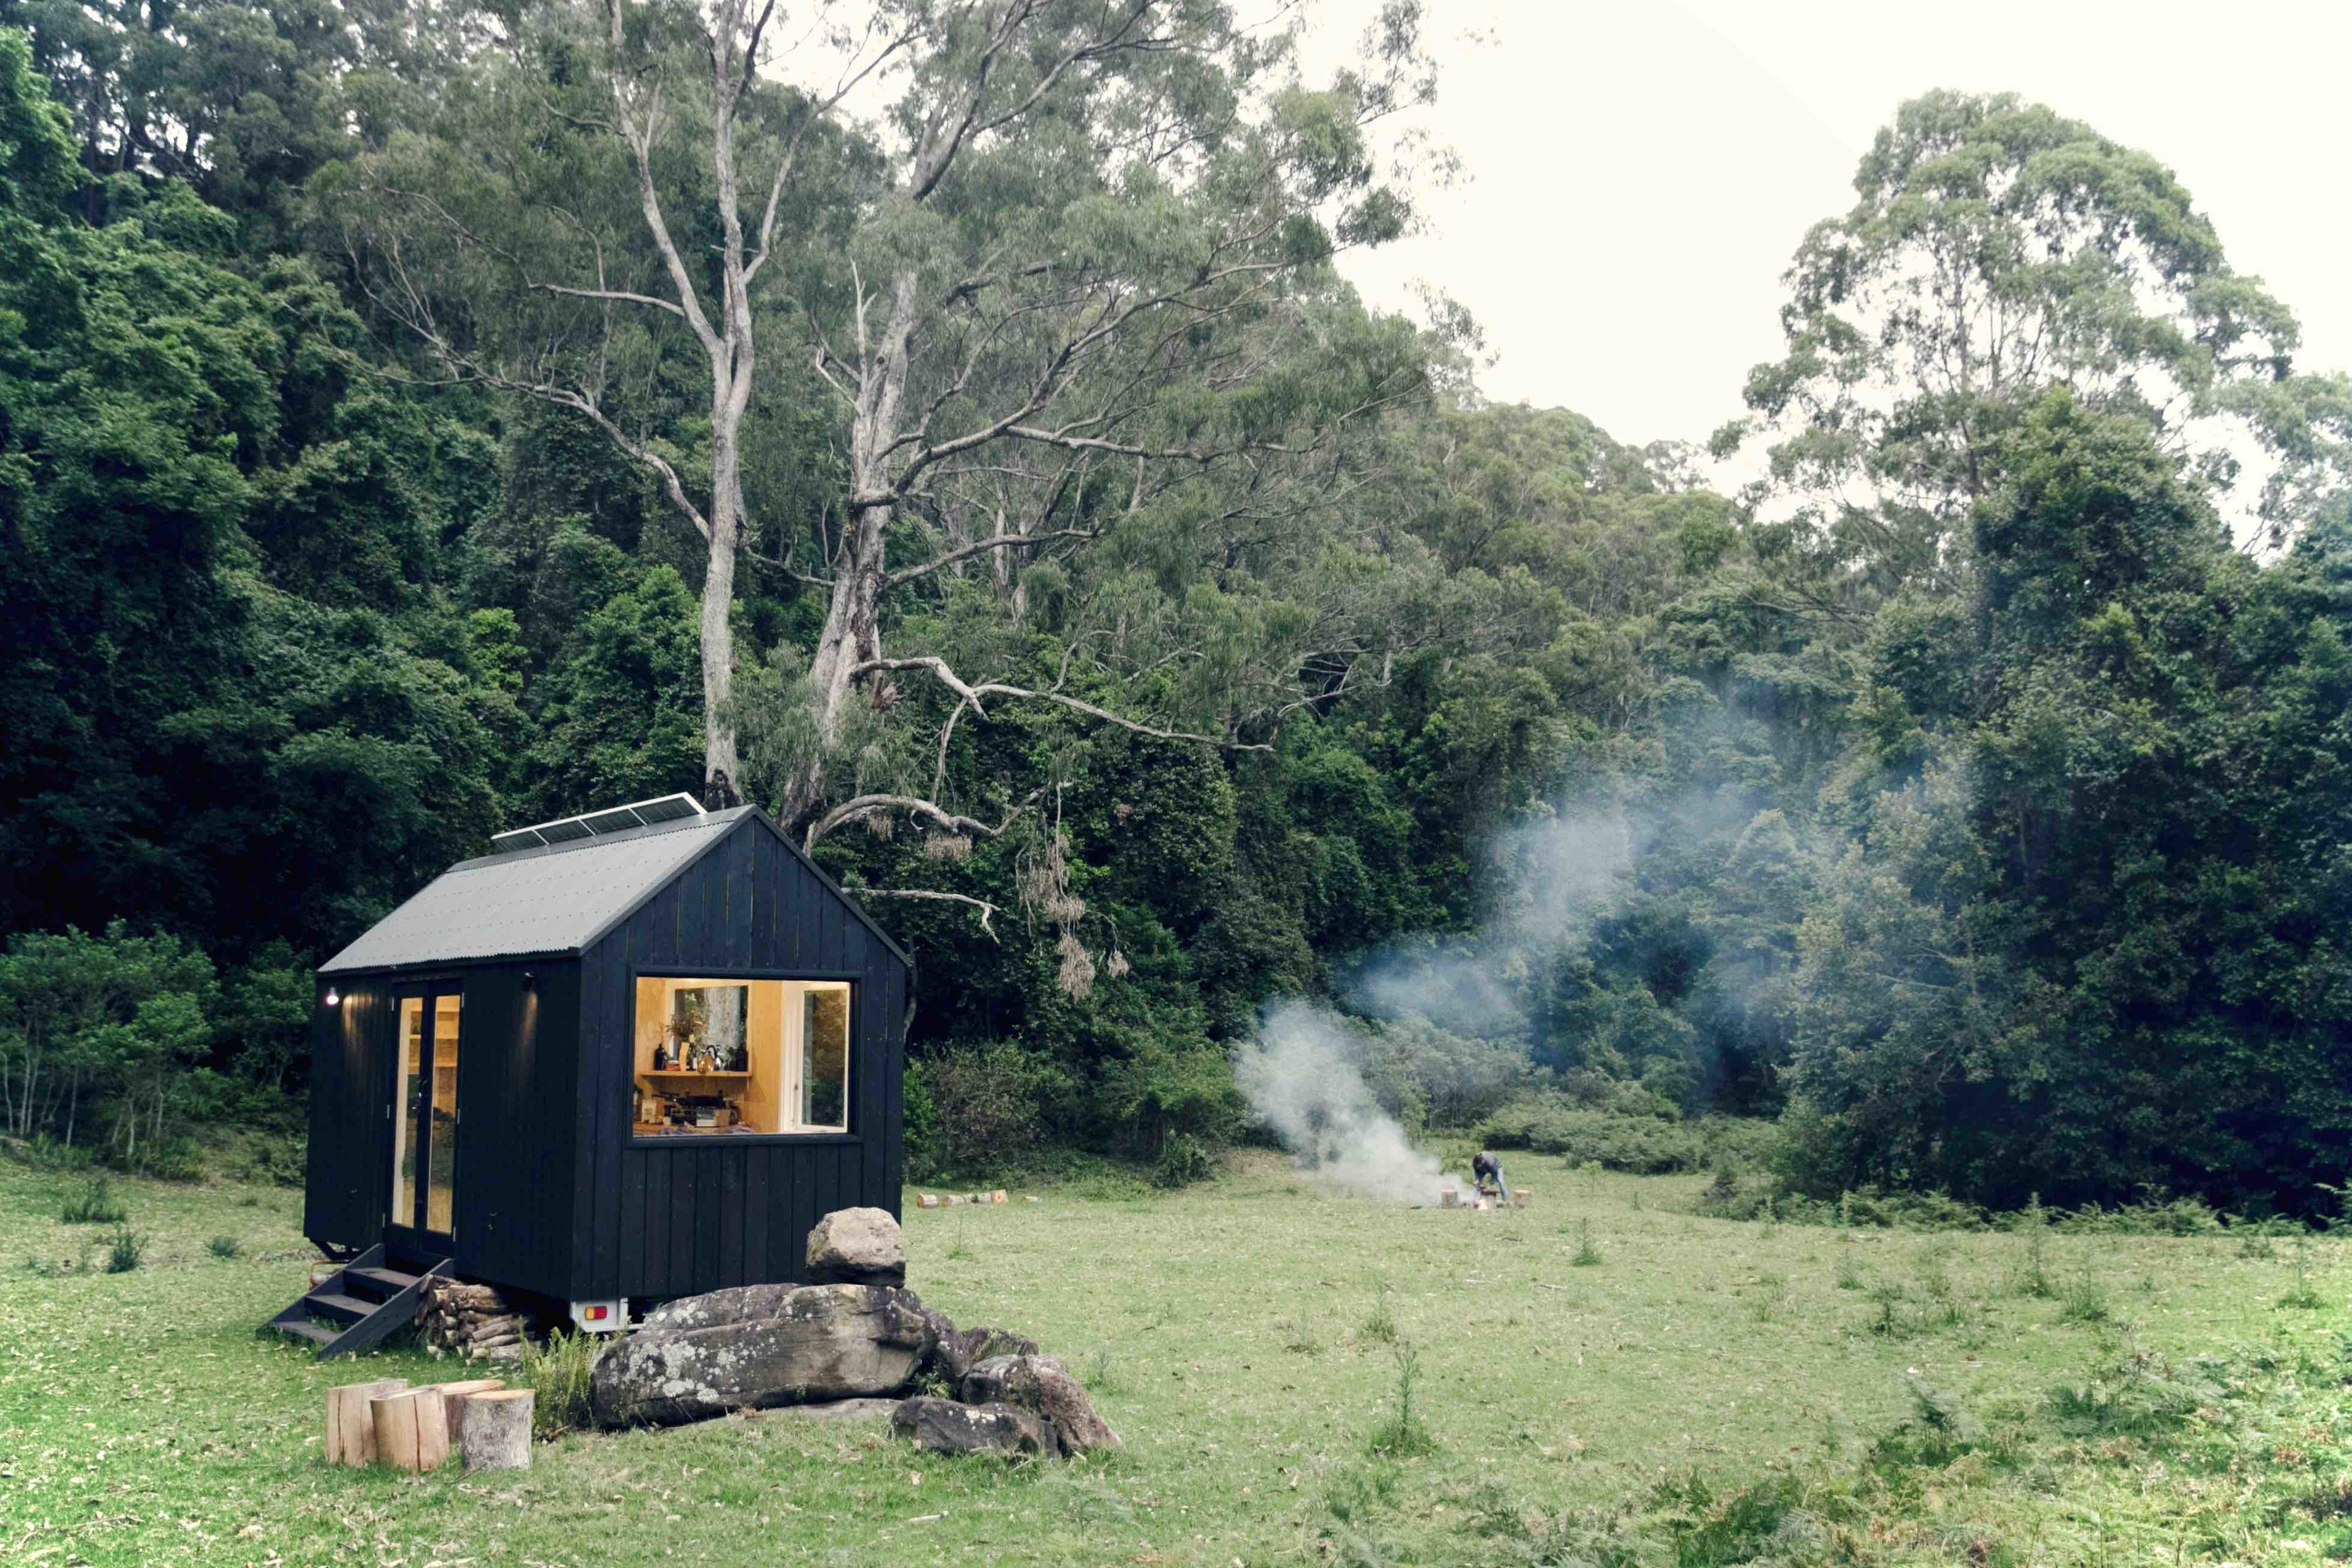 You can stay in a tiny house in the middle of Victoria's wilderness